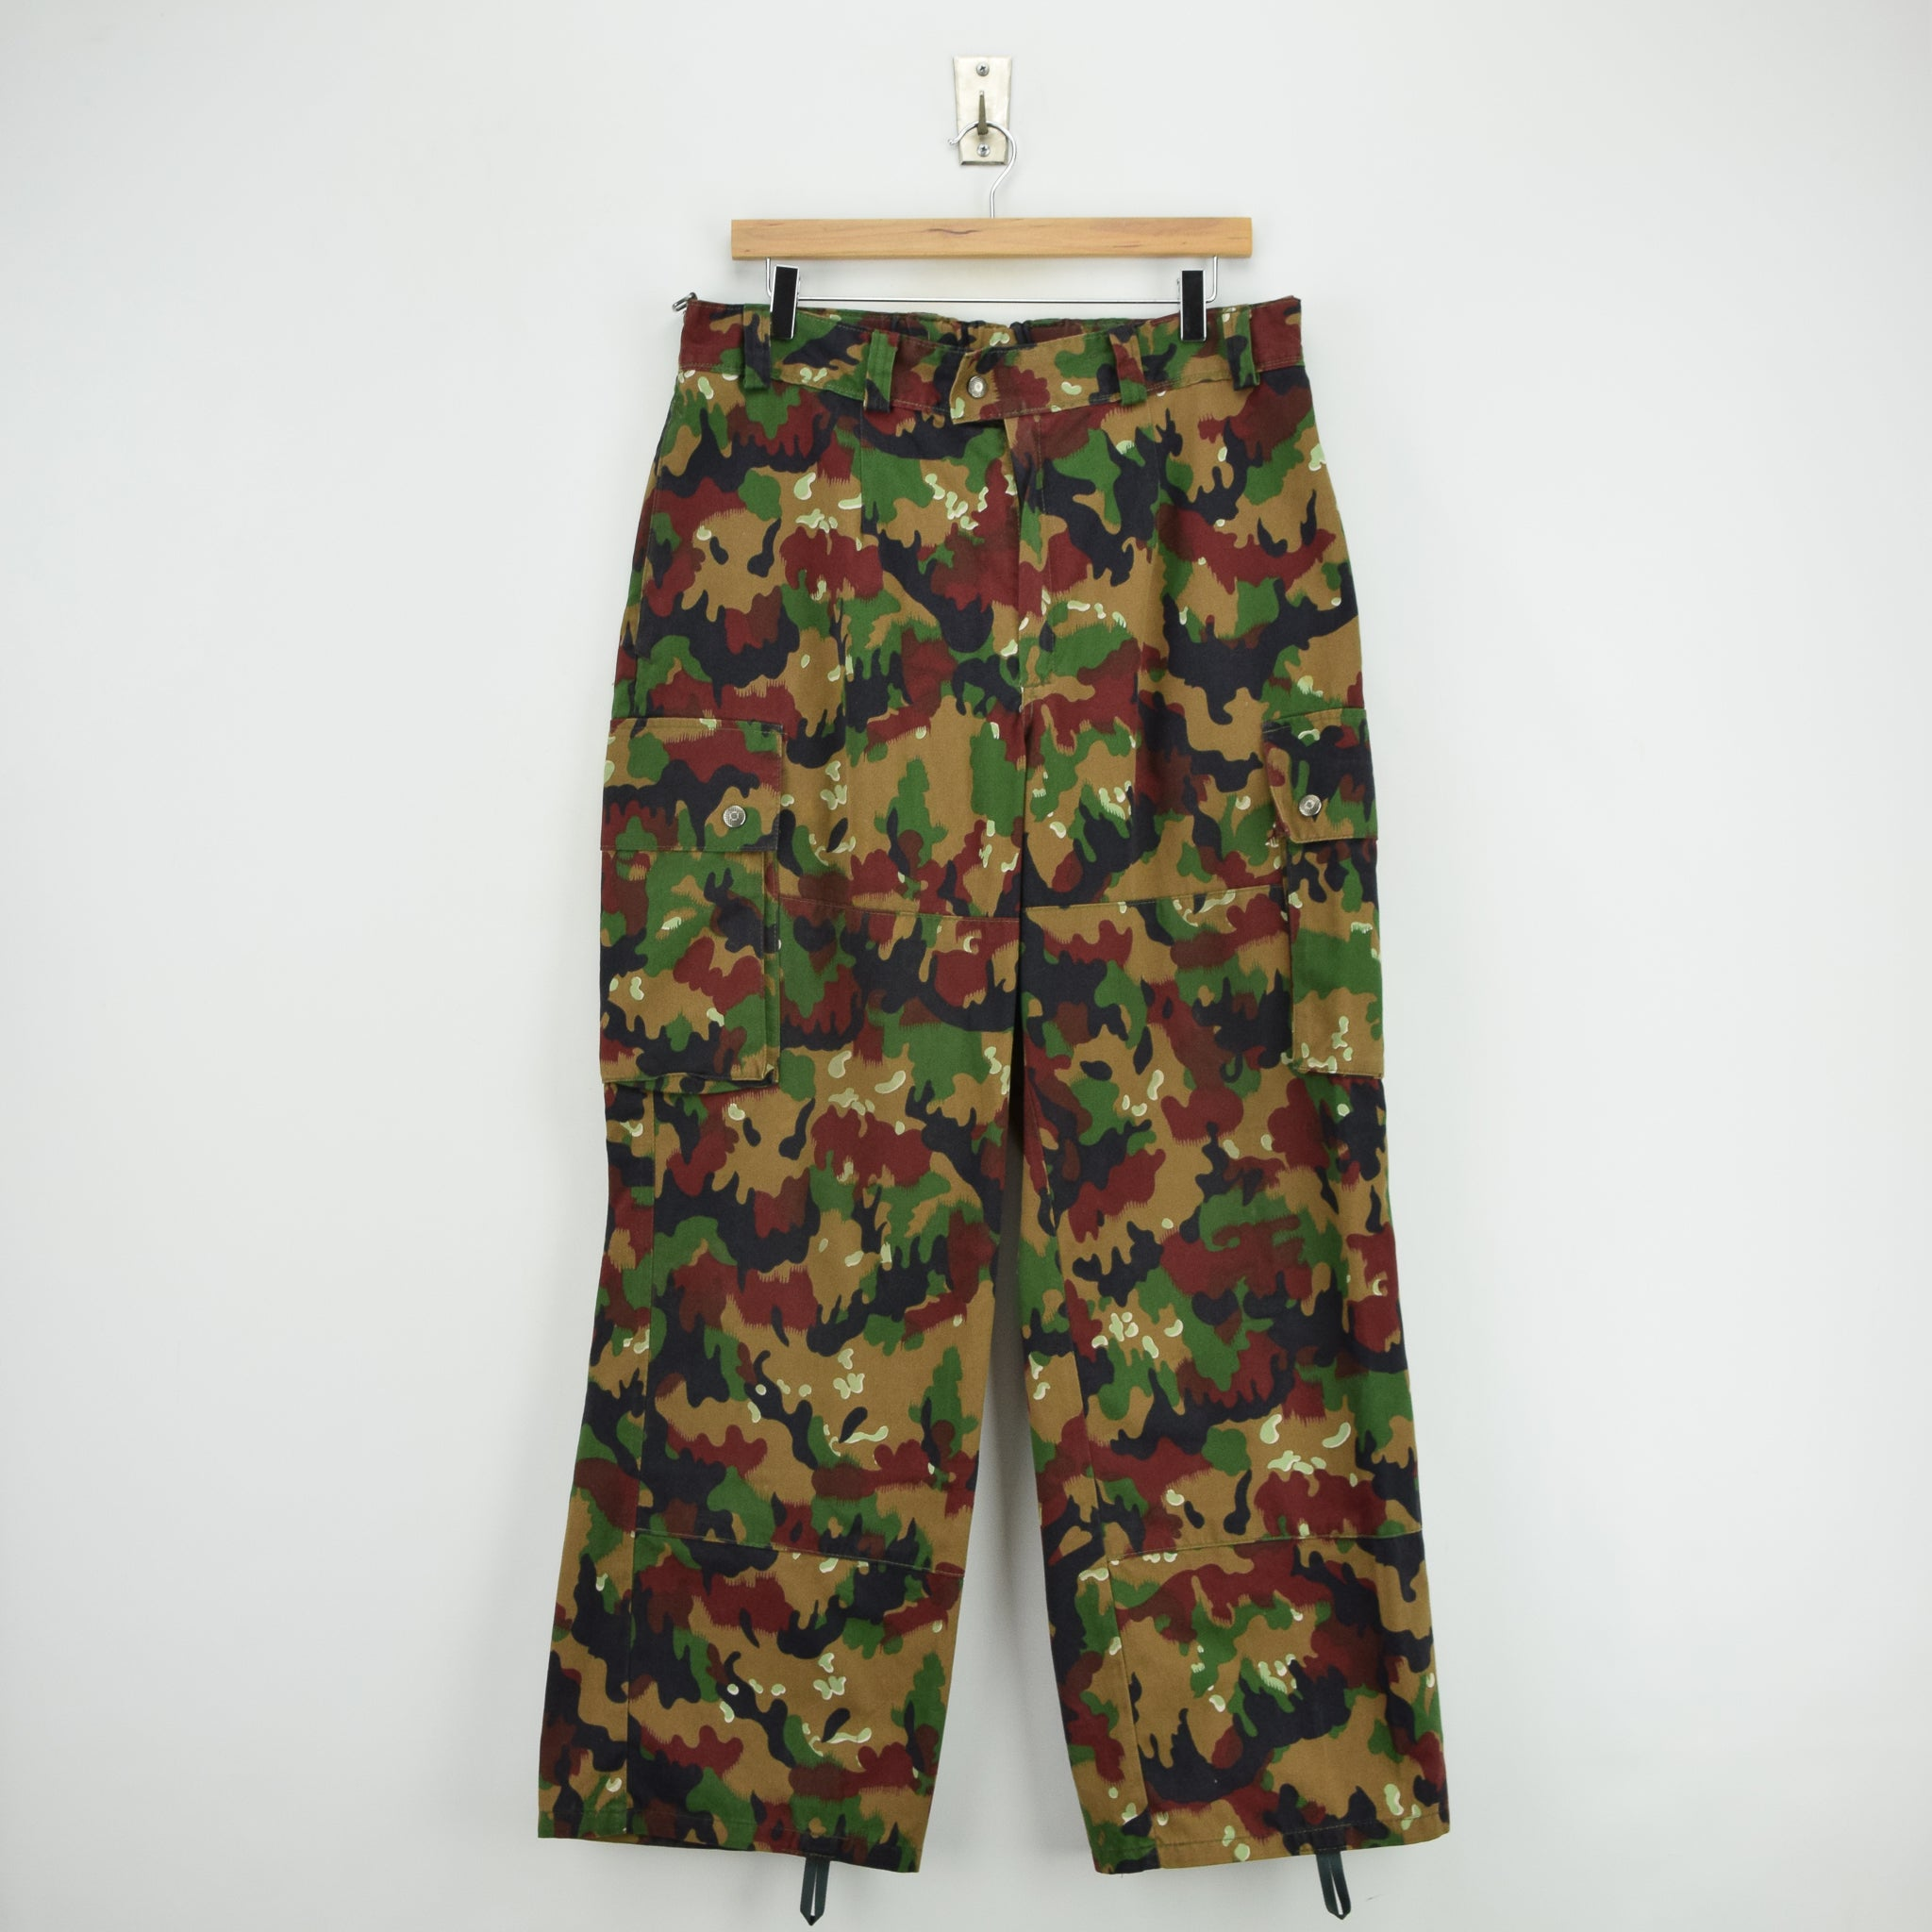 Vintage Swiss Army Alpenflage Camo Combat Pants Trousers Made in Sweden 32 W front